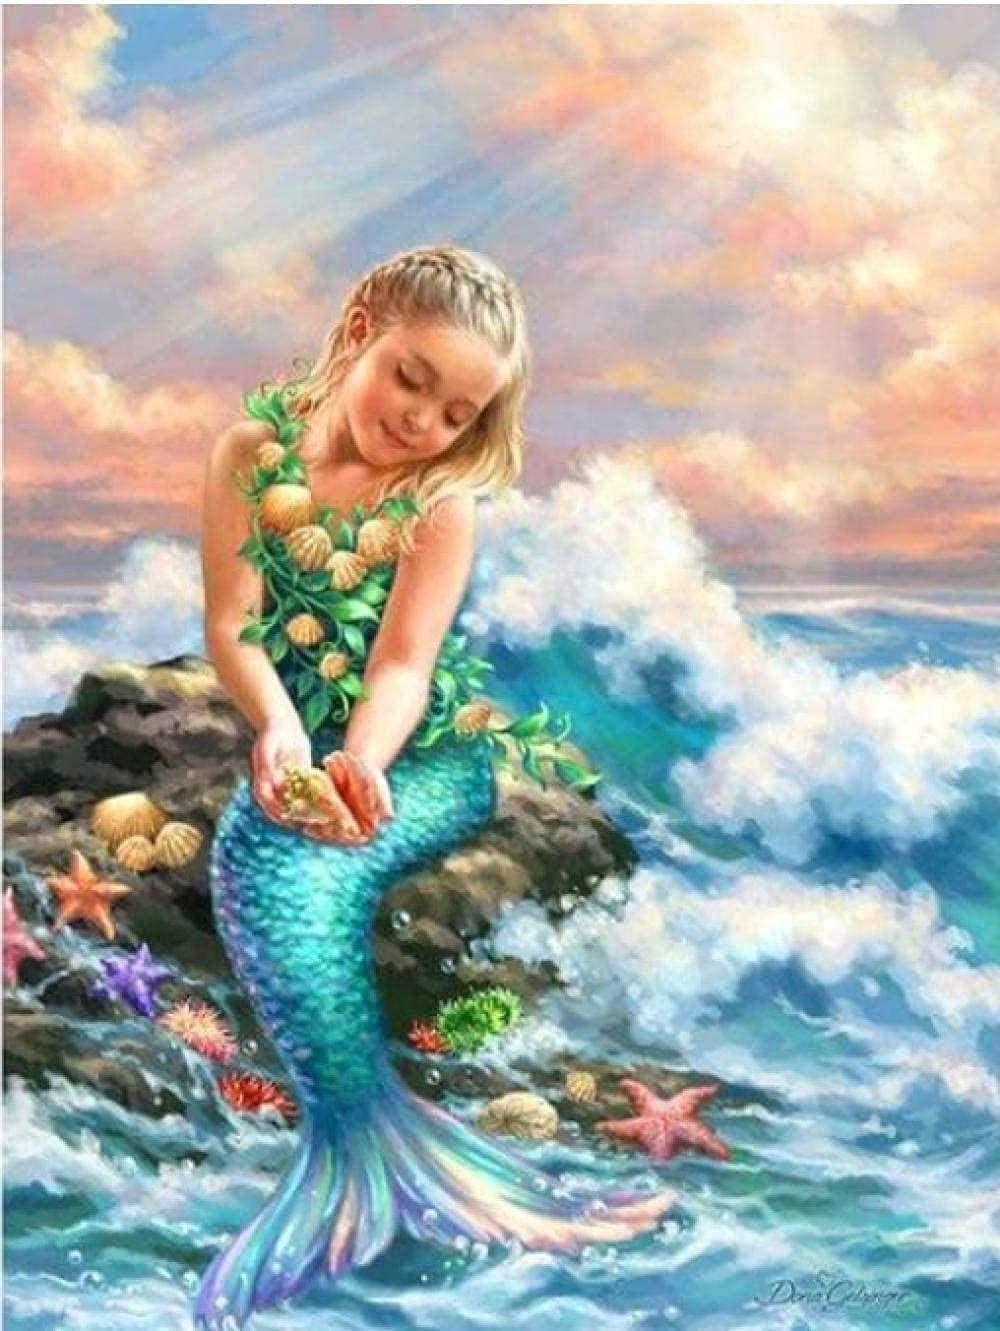 NYIXIA Stamped Cross Stitch Kits Beginner Little Many popular brands The Cheap bargain for Adults